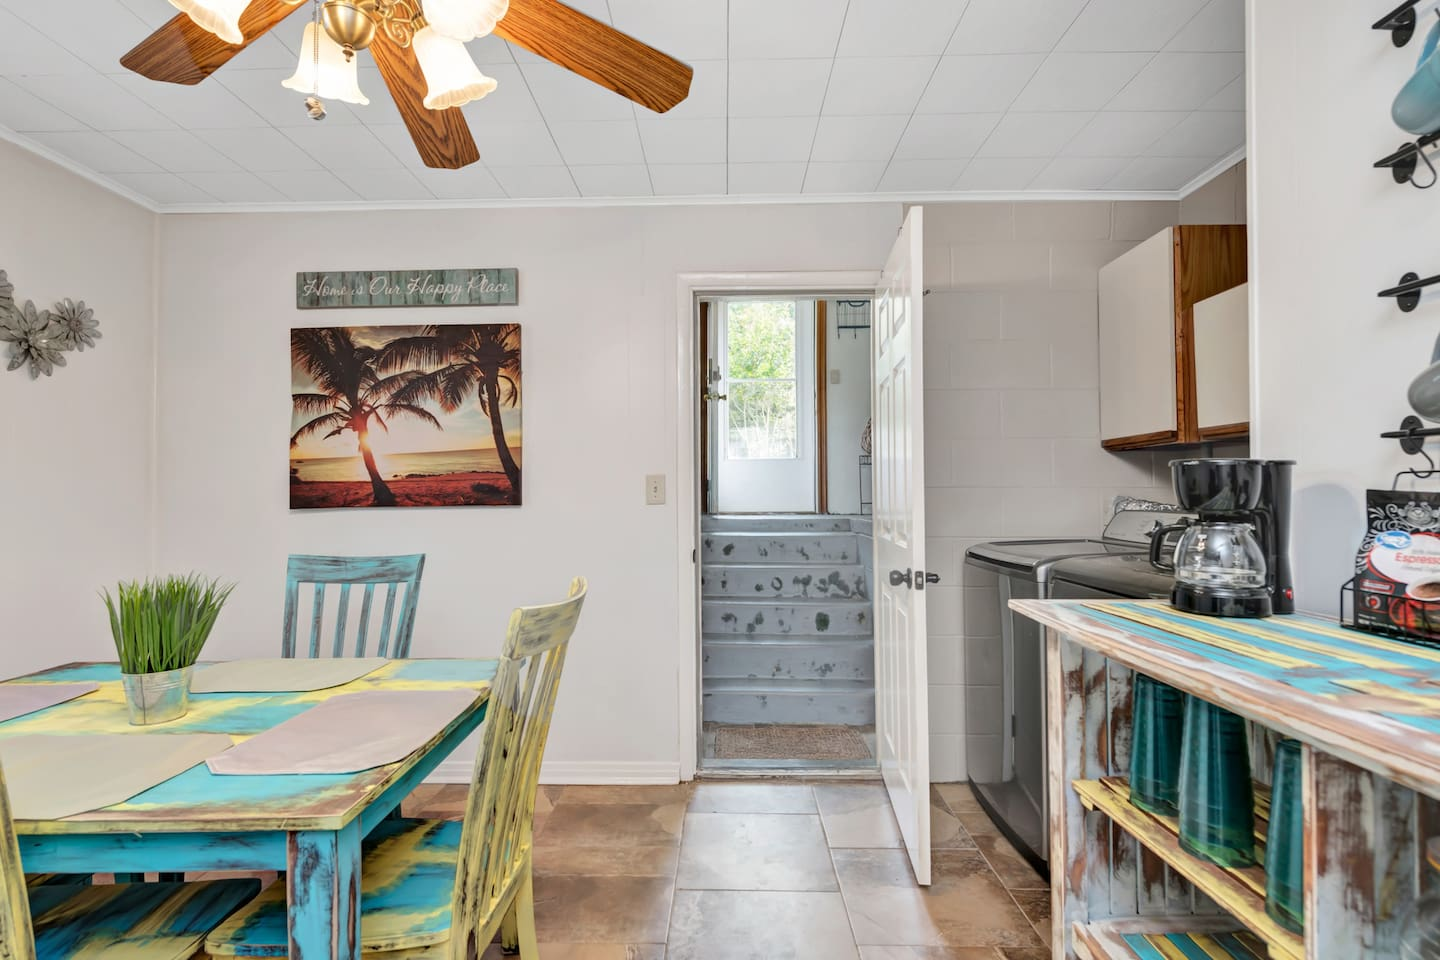 Dining Table in Kitchenette with washer and dryer available for guest use!